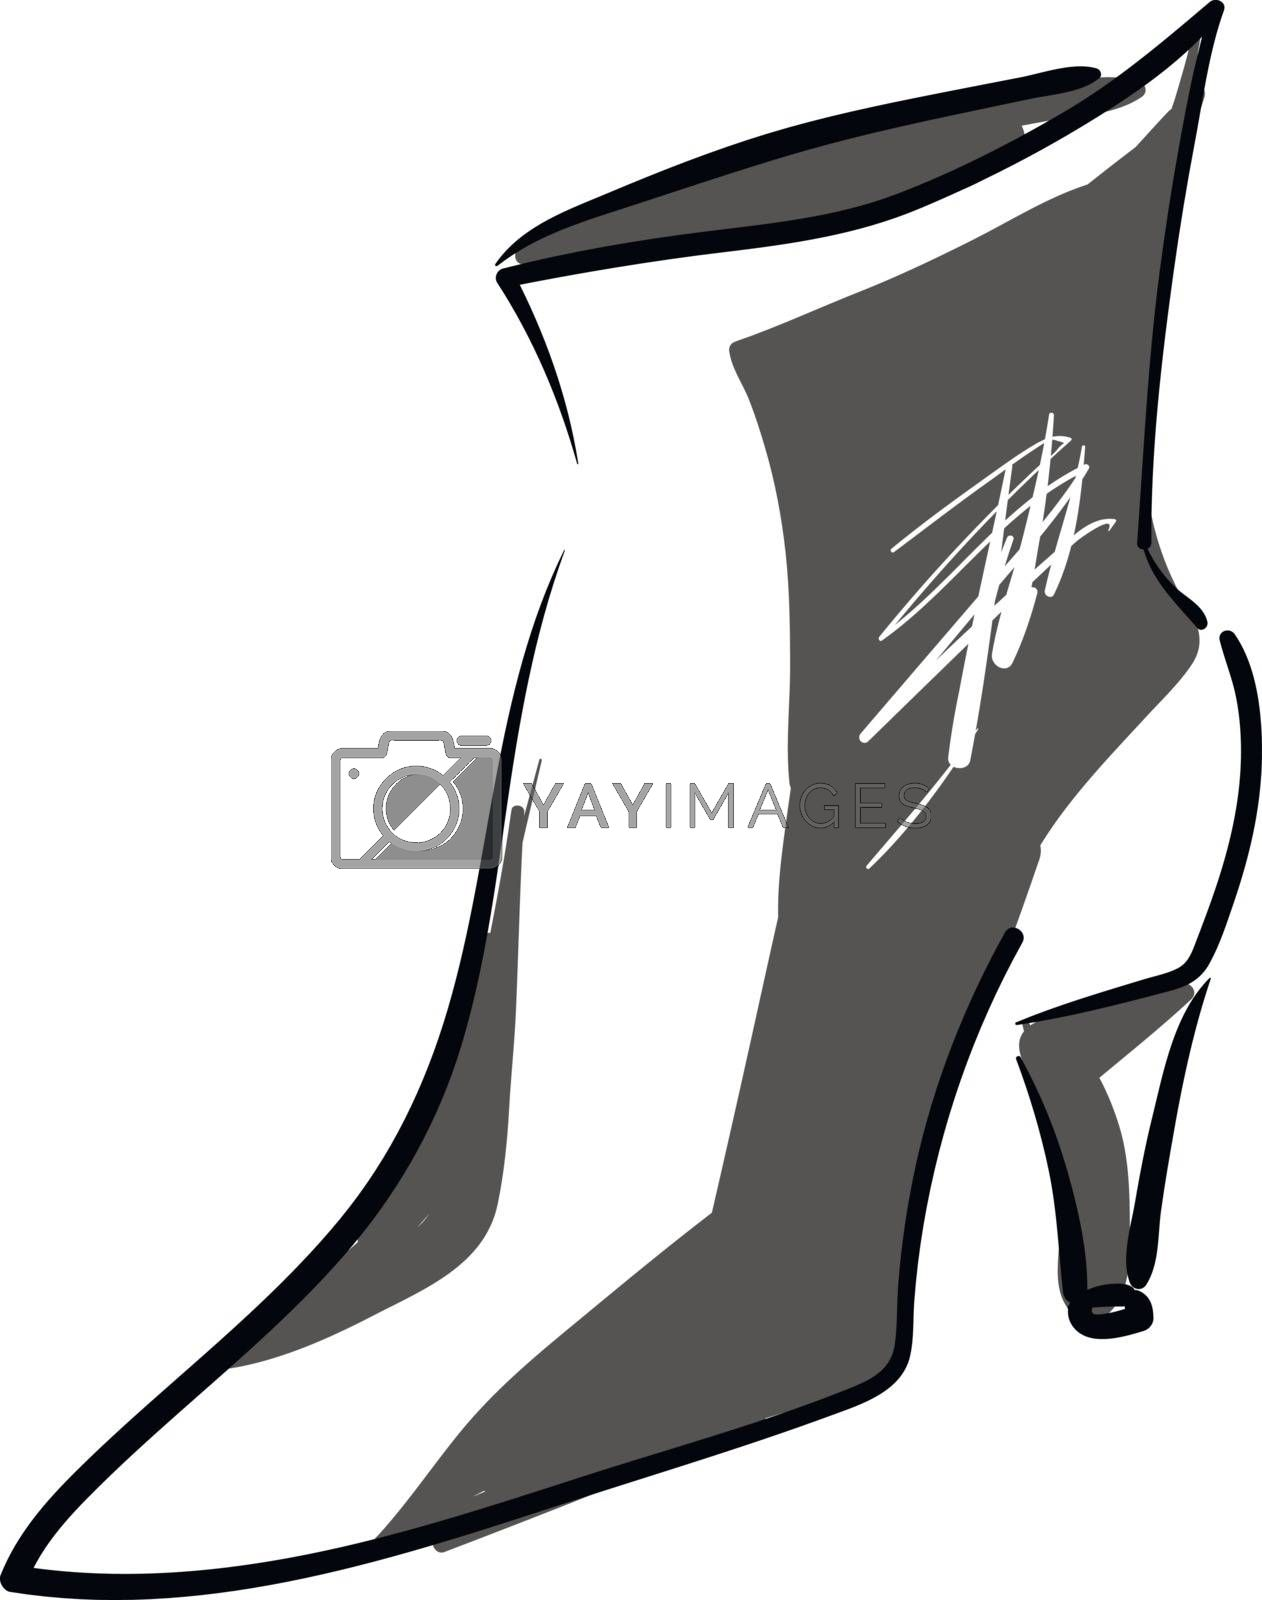 Royalty free image of Clipart of a high heel grey shoe vector or color illustration by Morphart